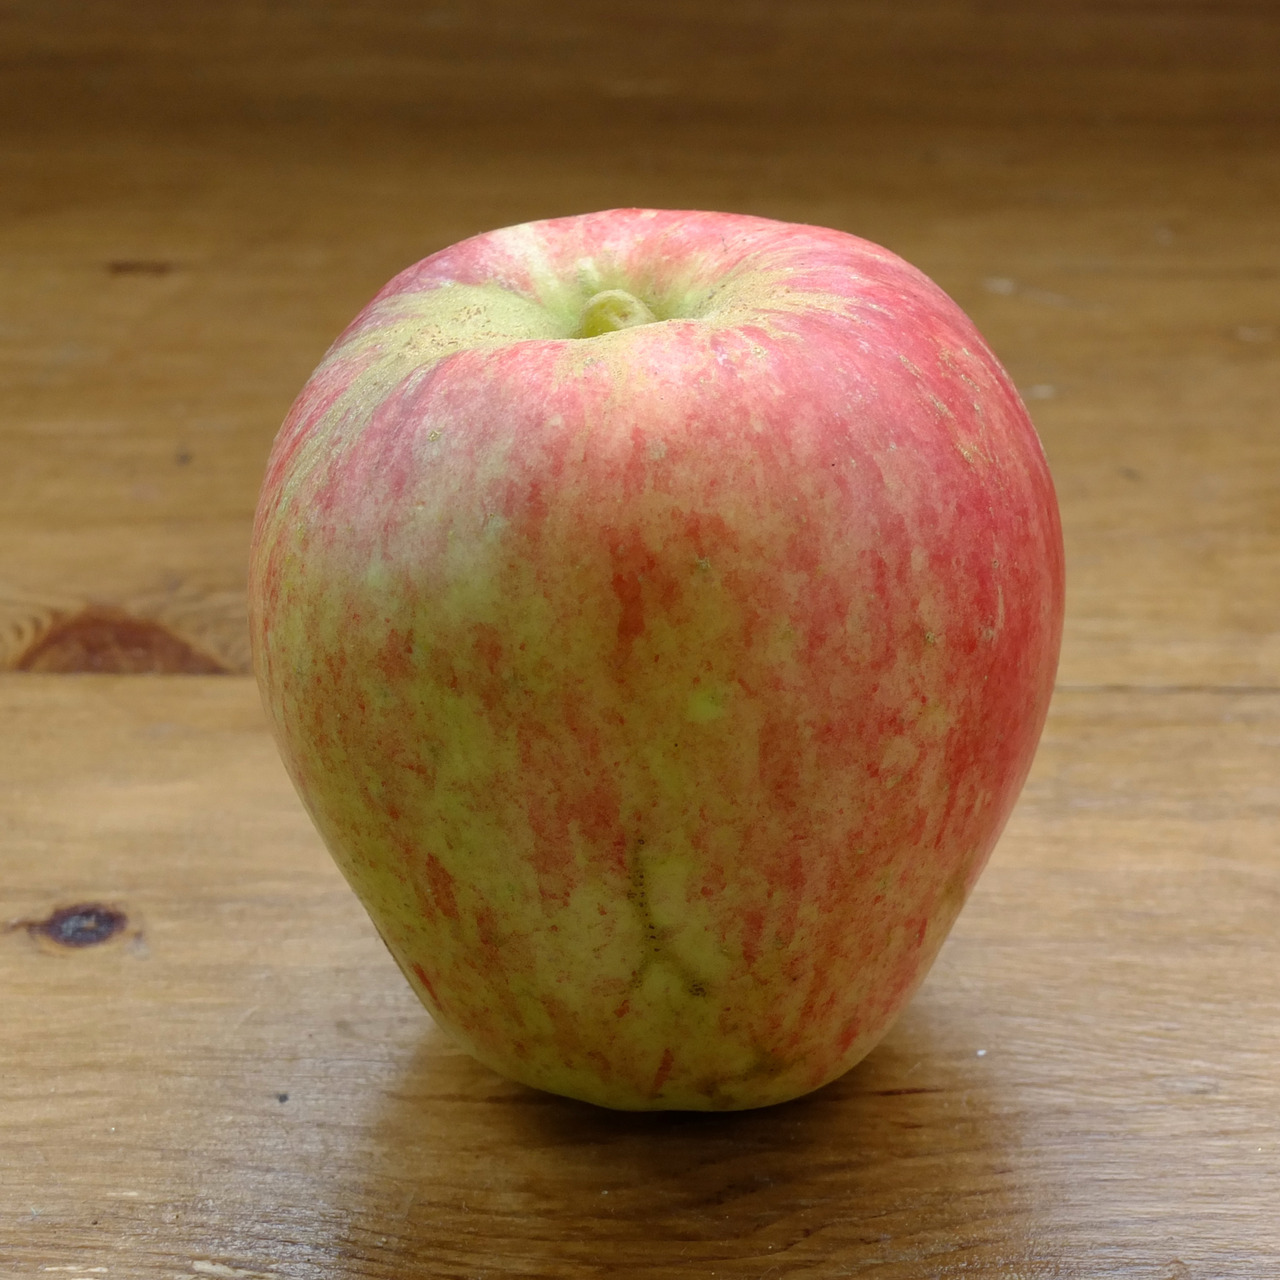 "tonyharrattphotography:  The Bardsey Apple - a story for foodies everywhere… The Bardsey Apple is a bit of a rarity. Bardsey - Ynys Enlli in Welsh - is a small island off the tip of the Lleyn peninsular at the north end of Cardigan Bay. It has a religious history with a monastery having been founded there in the 13th Century. However, pre-Roman Celts are believed to have visited the island to pray and probably die while chasing the setting sun. In 1998 one of the wardens on the island used some windfall apples from under an old tree to bait a mist net, which is used to catch birds; the birds are then ringed for research purposes. He noted that the apples were disease free. Unable to identify the apples they were sent to the UK National Fruit Collection in Kent where it was determined that the fruit and tree were unique. Thus, the tree obtained the title of ""the rarest tree in the world""! From the original tree on the island it has been possible to produce further trees and a good friend was given one as a gift. This year it's produced a single fruit - the one in this post! The tree was probably pollinated by a neighbours bees so it is keeping a very tight grip on its Welsh heritage. The apple is very tasty, slightly tart, with a good crunch. This one may have needed a little more time on the tree.  Read much more here at the Bardsey Apple homepage…  With all the apple-related activity going on on my Tumblr just now this little apple is feeling a tad lonely. He's much more interesting than the Pink Lady and Gala one's everyone seems smitten with. So… I give you… THE BARDSEY APPLE"